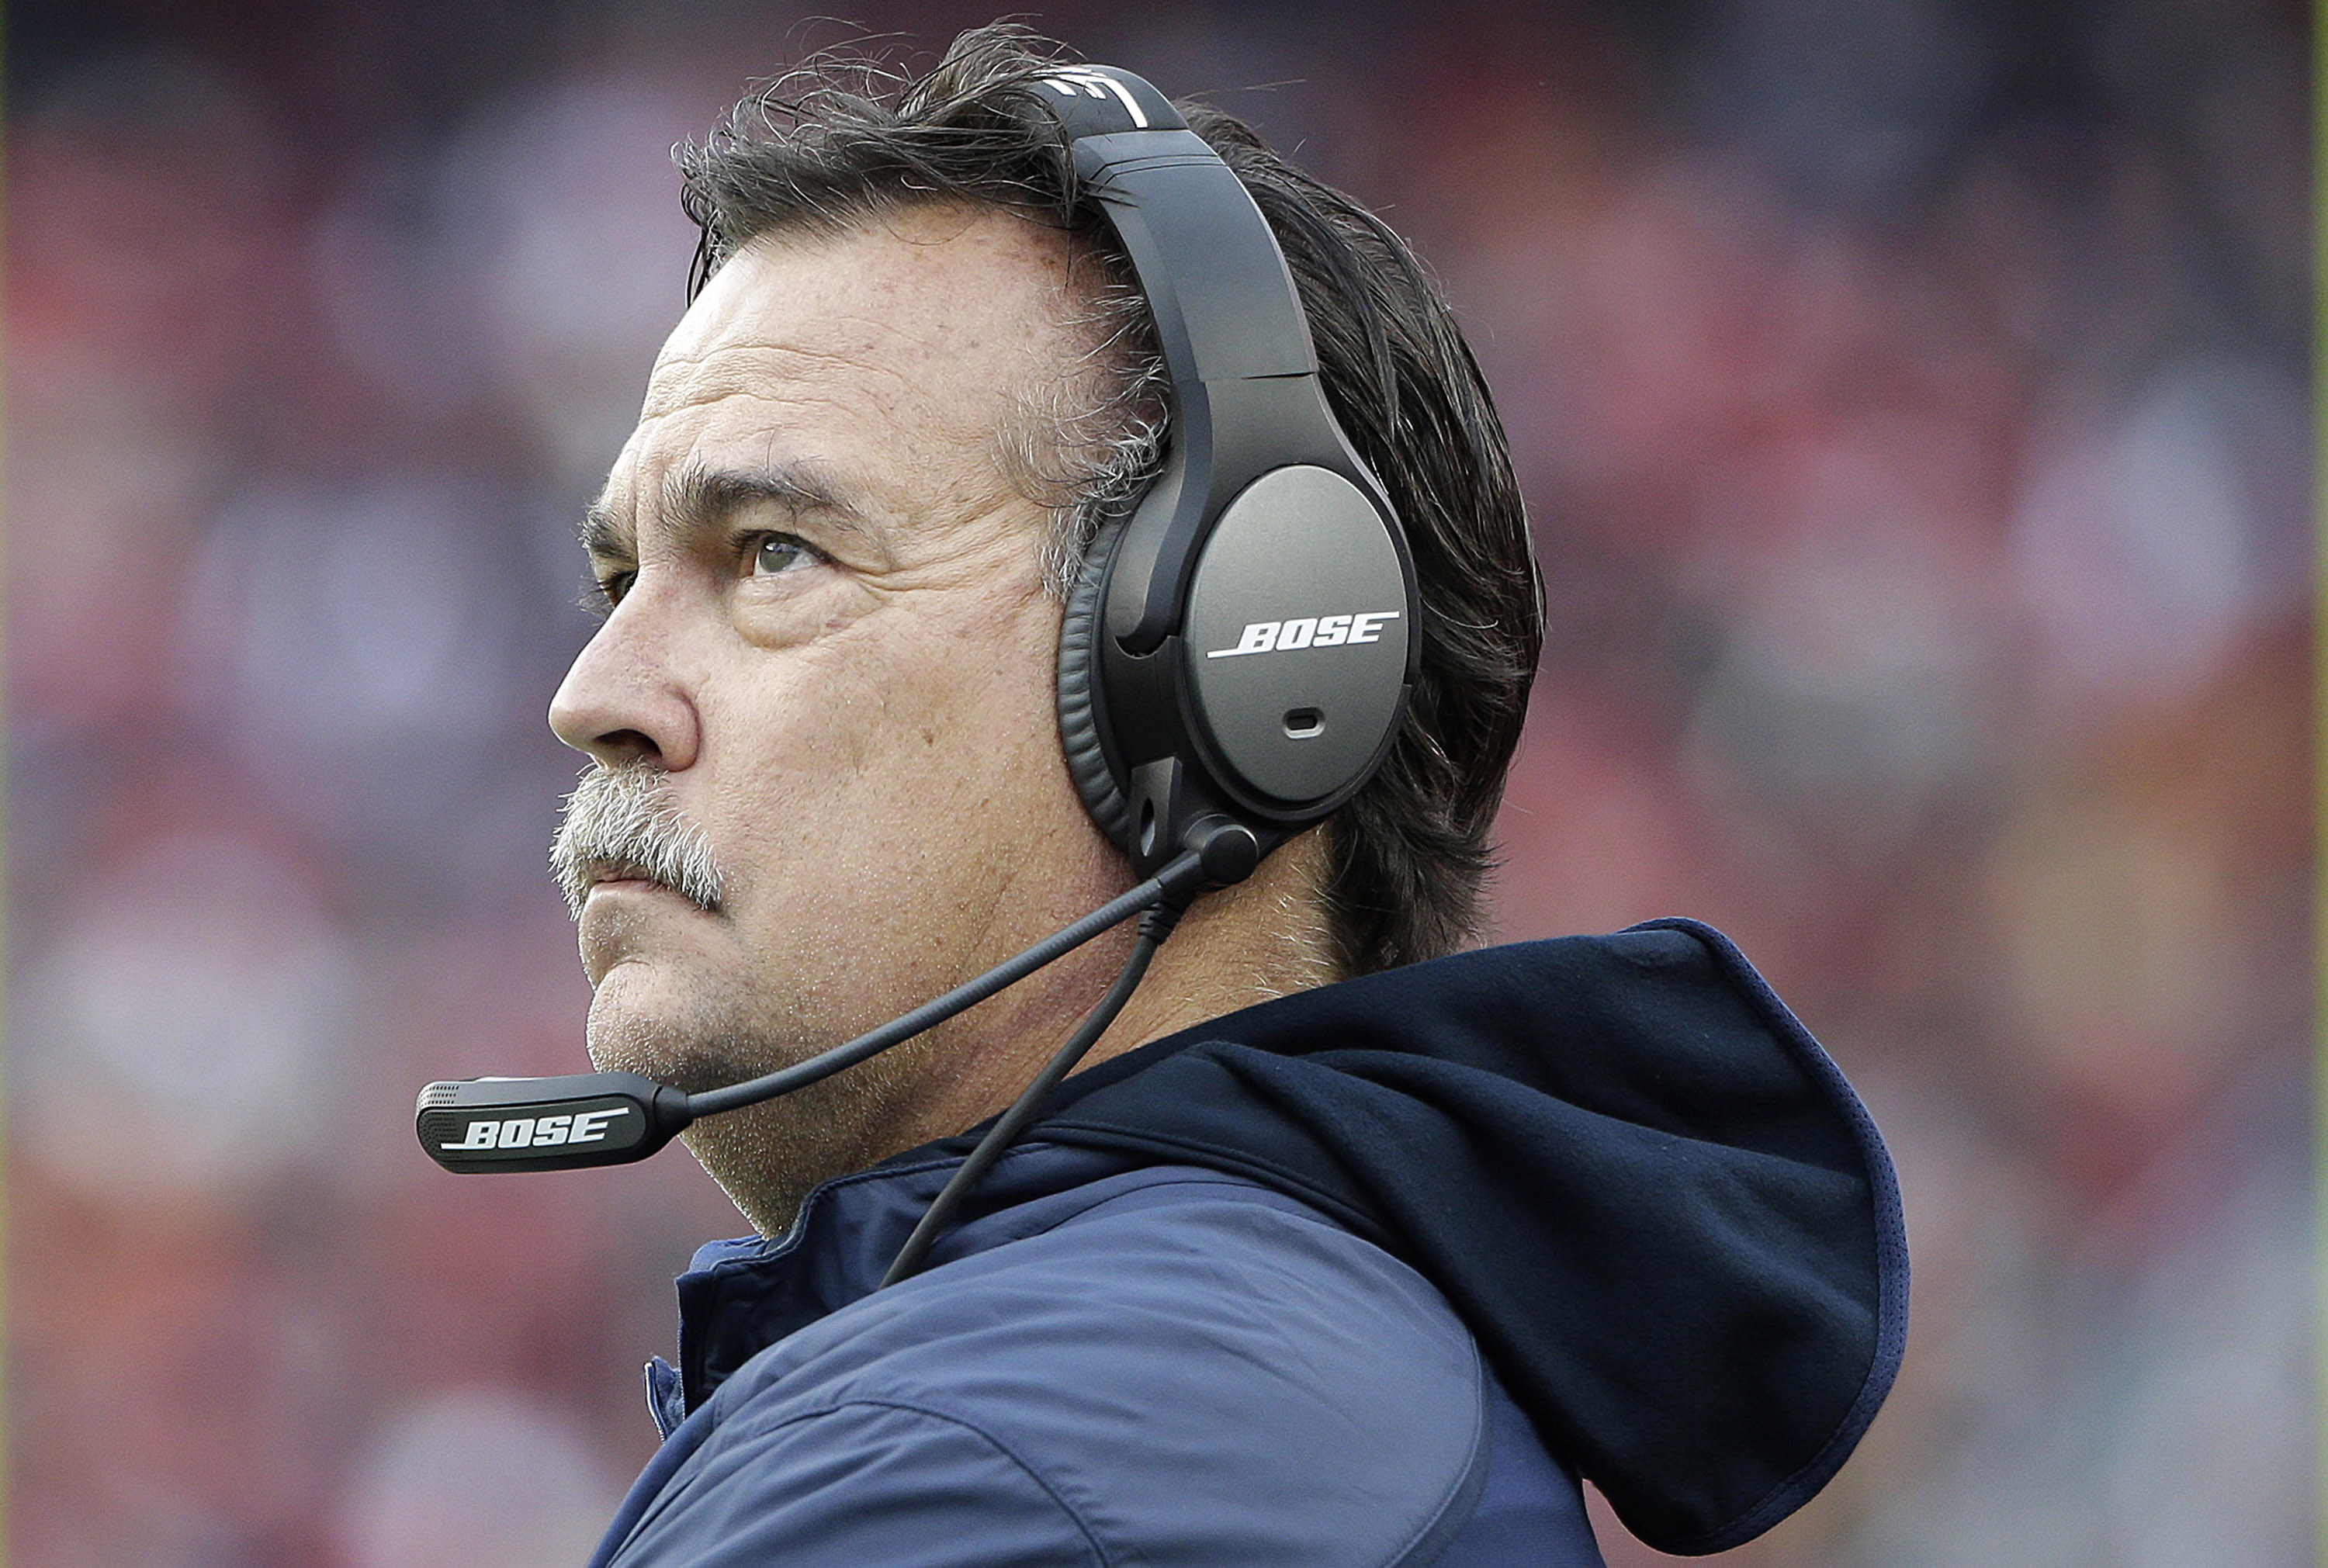 St. Louis Rams head coach Jeff Fisher watches from the sideline during the second half of an NFL football game against the San Francisco 49ers in Santa Clara, Calif., Sunday, Jan. 3, 2016. (AP Photo/Marcio Jose Sanchez)